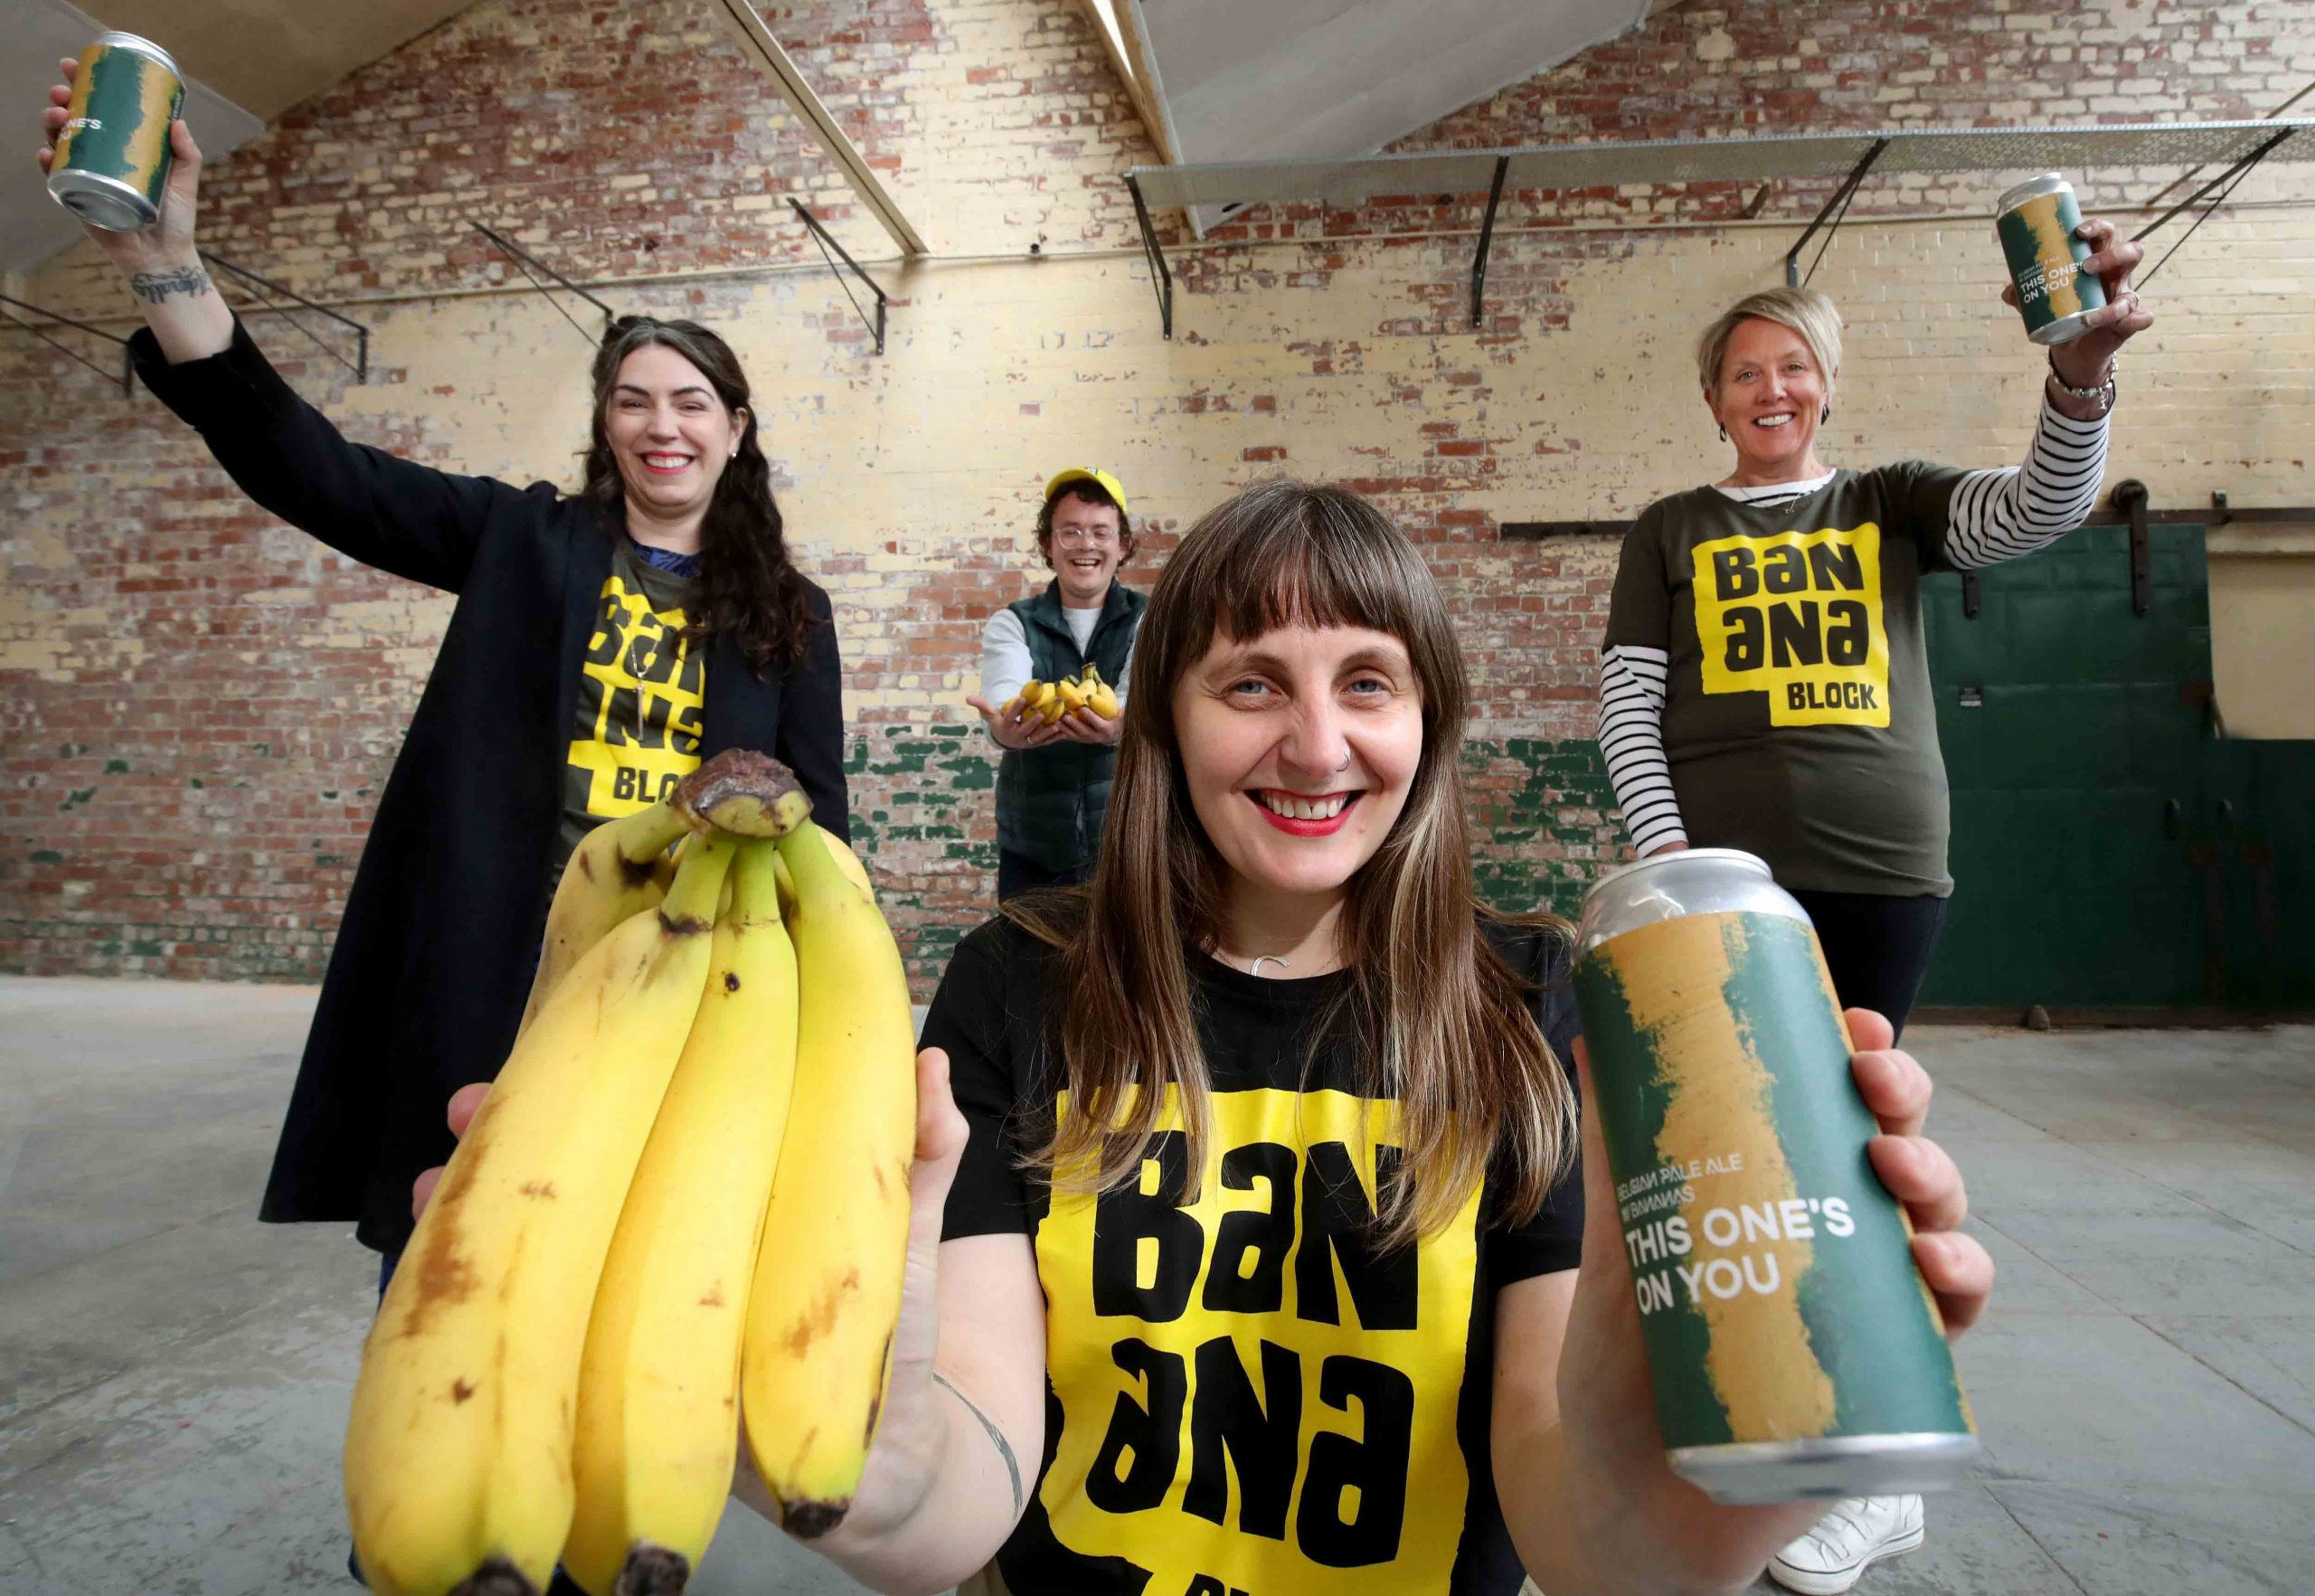 BELFAST GOES BANANAS: Funding is in place to transform 700m2 of vacant space at Portview Trade Centre in East Belfast into 'Banana Block', a tourism oasis and agri-tech living museum set within a tropical banana plant-filled greenhouse. Tourism Northern Ireland has deemed the Newtownards Road site (formerly the home of Strand Spinning Mill) ripe for development and provided a grant of £148,950 towards the project, which has been developed by Portview and National Museums NI to help restore Belfast's unique banana heritage that dates back more than 100 years. Celebrating the announcement are (l-r) Lesley-Ann O'Donnell from Tourism NI, Gareth Neill of Portview Trade Centre, Claire Hall (front) from Urban Scale Interventions (USI), and Kathryn Thompson, CEO of National Museums NI. 'Banana Block' at Portview is due to open in August 2021. For more information, visit www.bananablock.org.